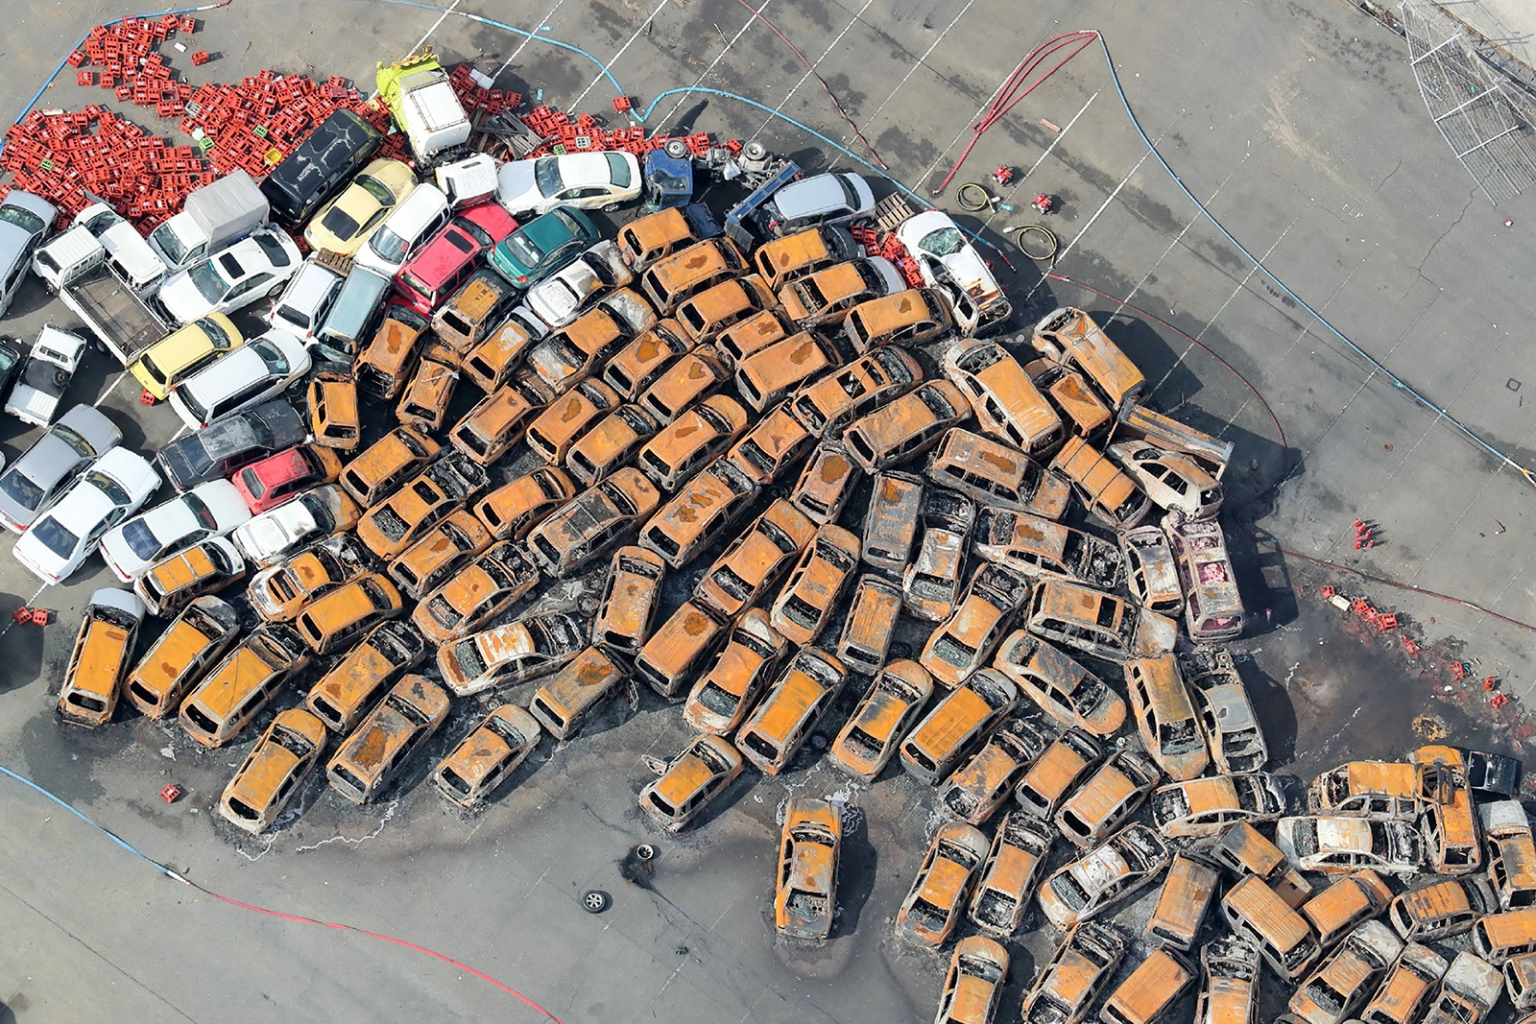 Burned vehicles are piled up after a storm surge and strong winds from typhoon Jebi in Nishinomiya, Japan, on Sept. 5. JIJI PRESS/AFP/Getty Images